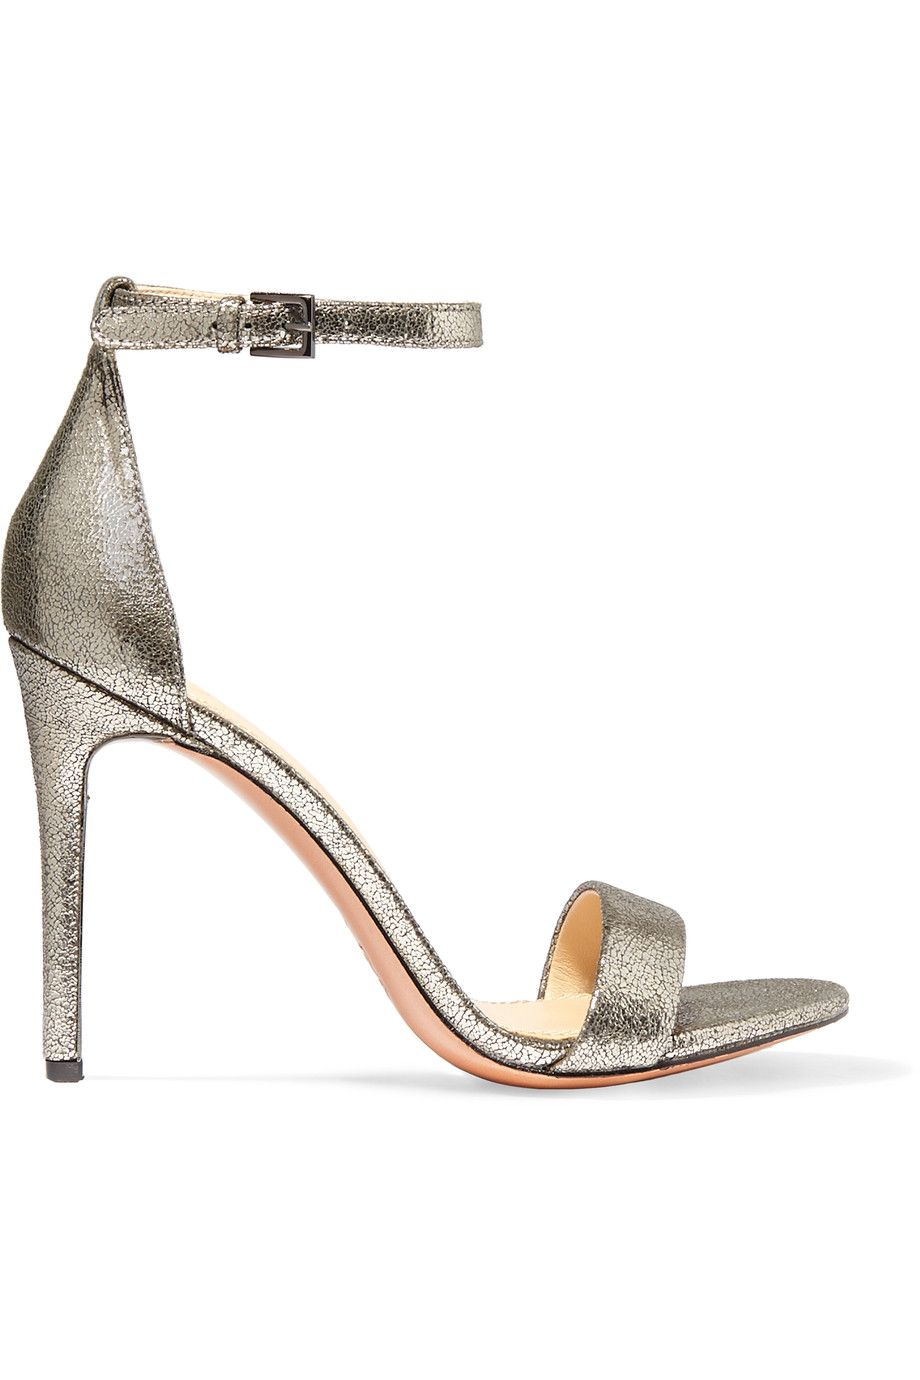 TORY BURCH Keri Metallic Suede Sandals. #toryburch #shoes #sandals